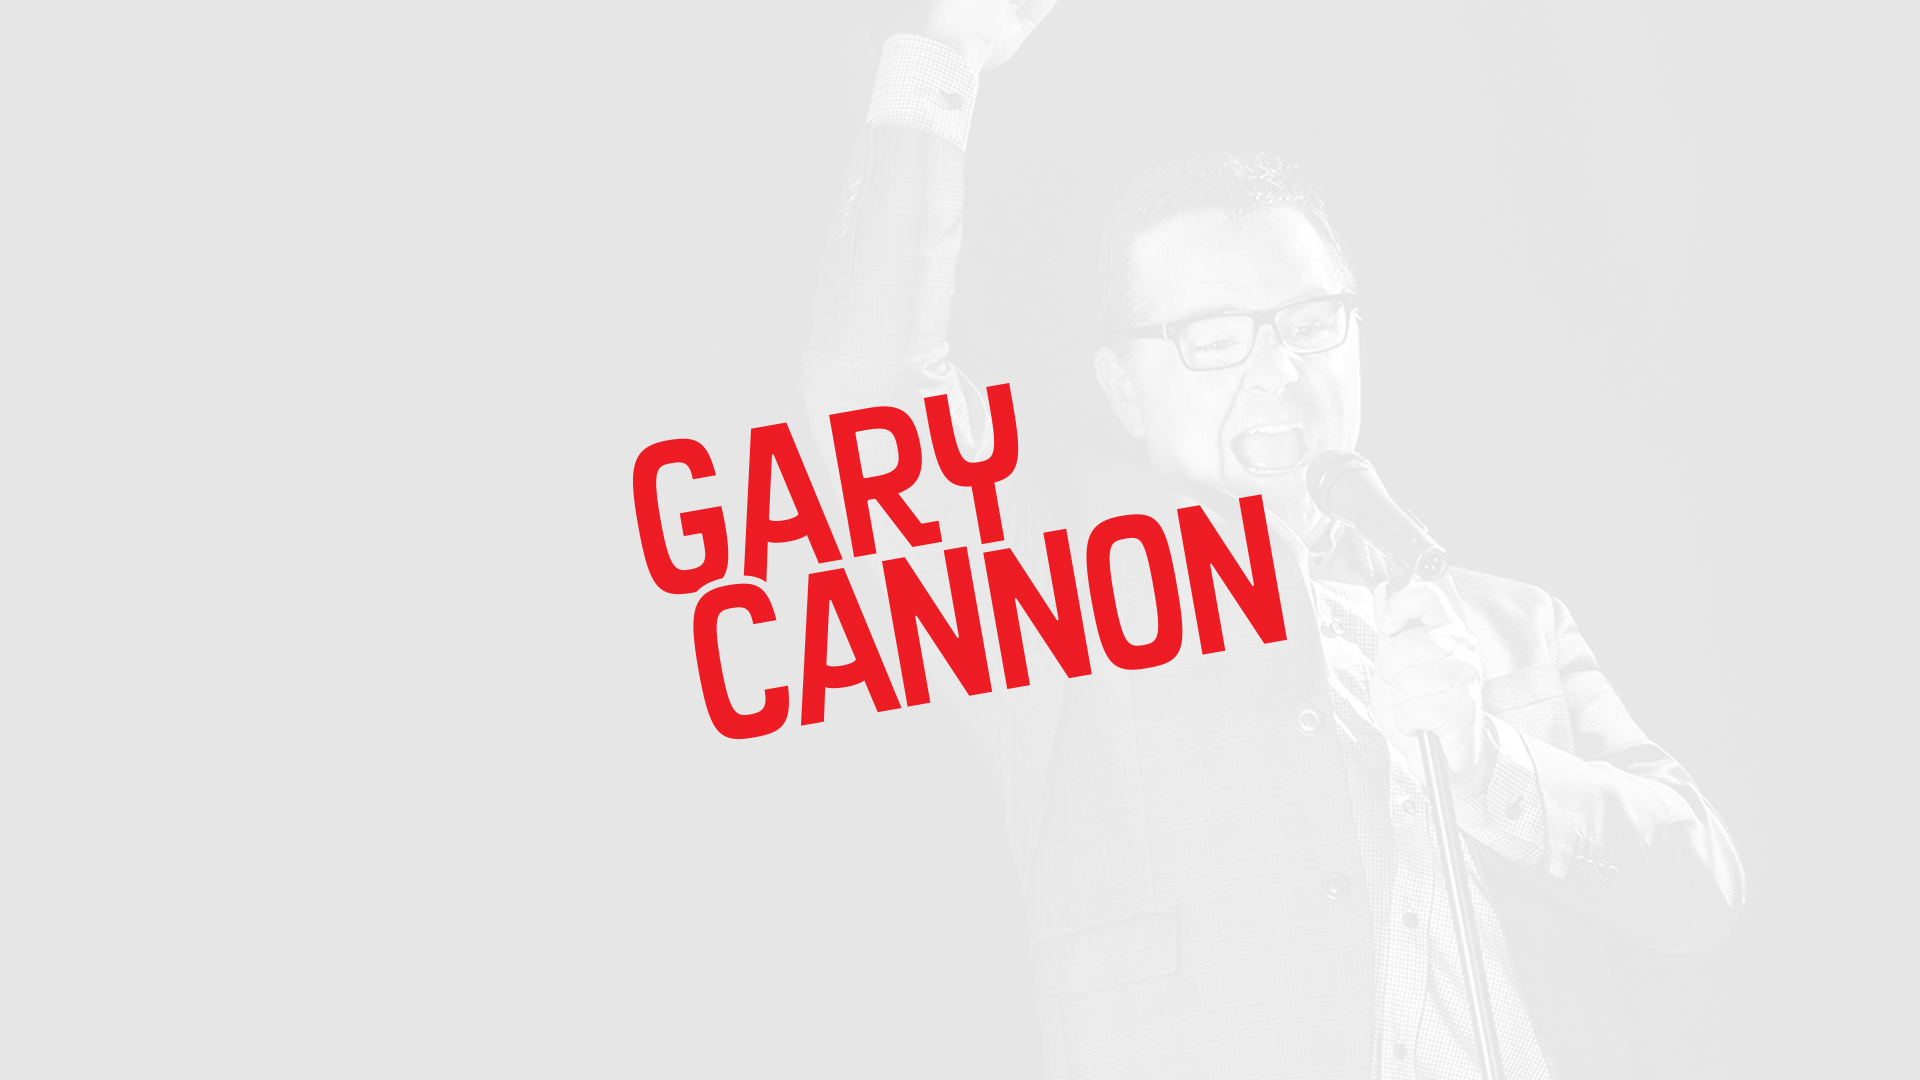 Y5-Creative-Gary-Cannon